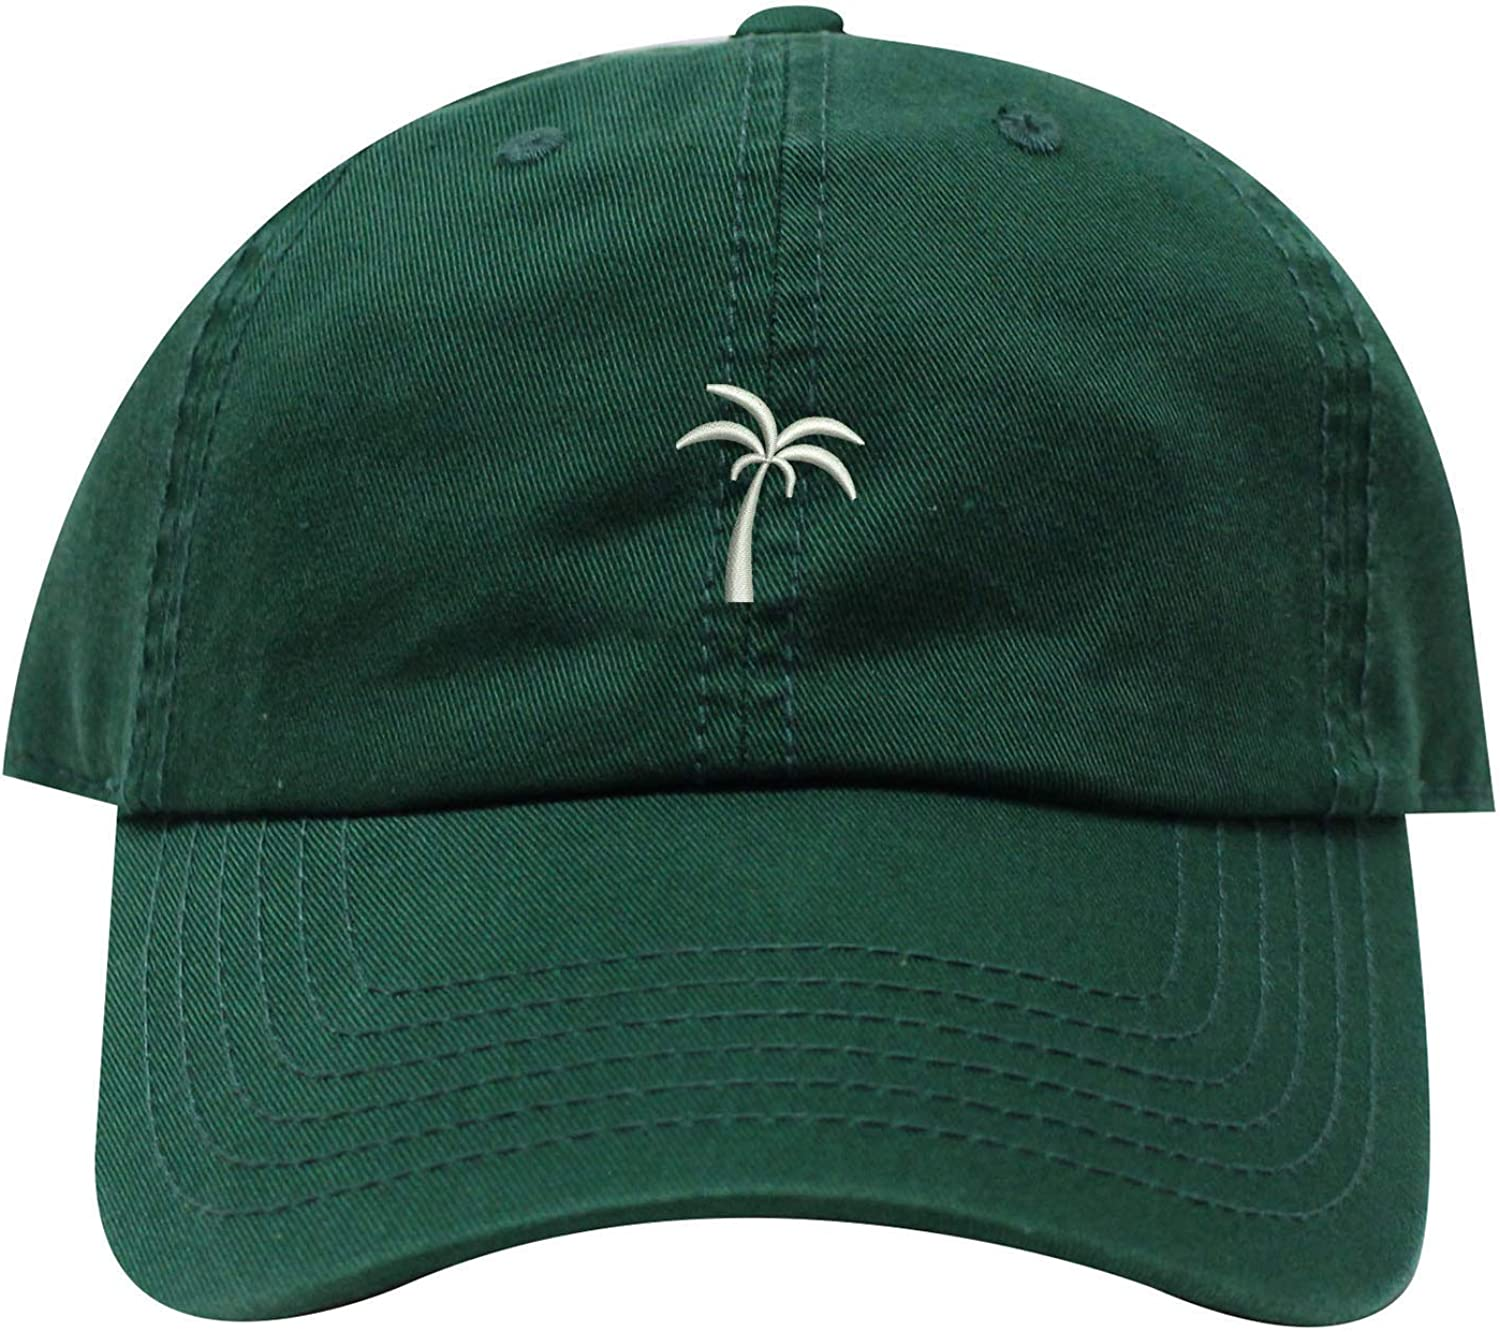 INK STITCH Palm Seasonal Wrap Introduction Tree Summer Unstructured Baseball 4 years warranty Caps 21 Cotton